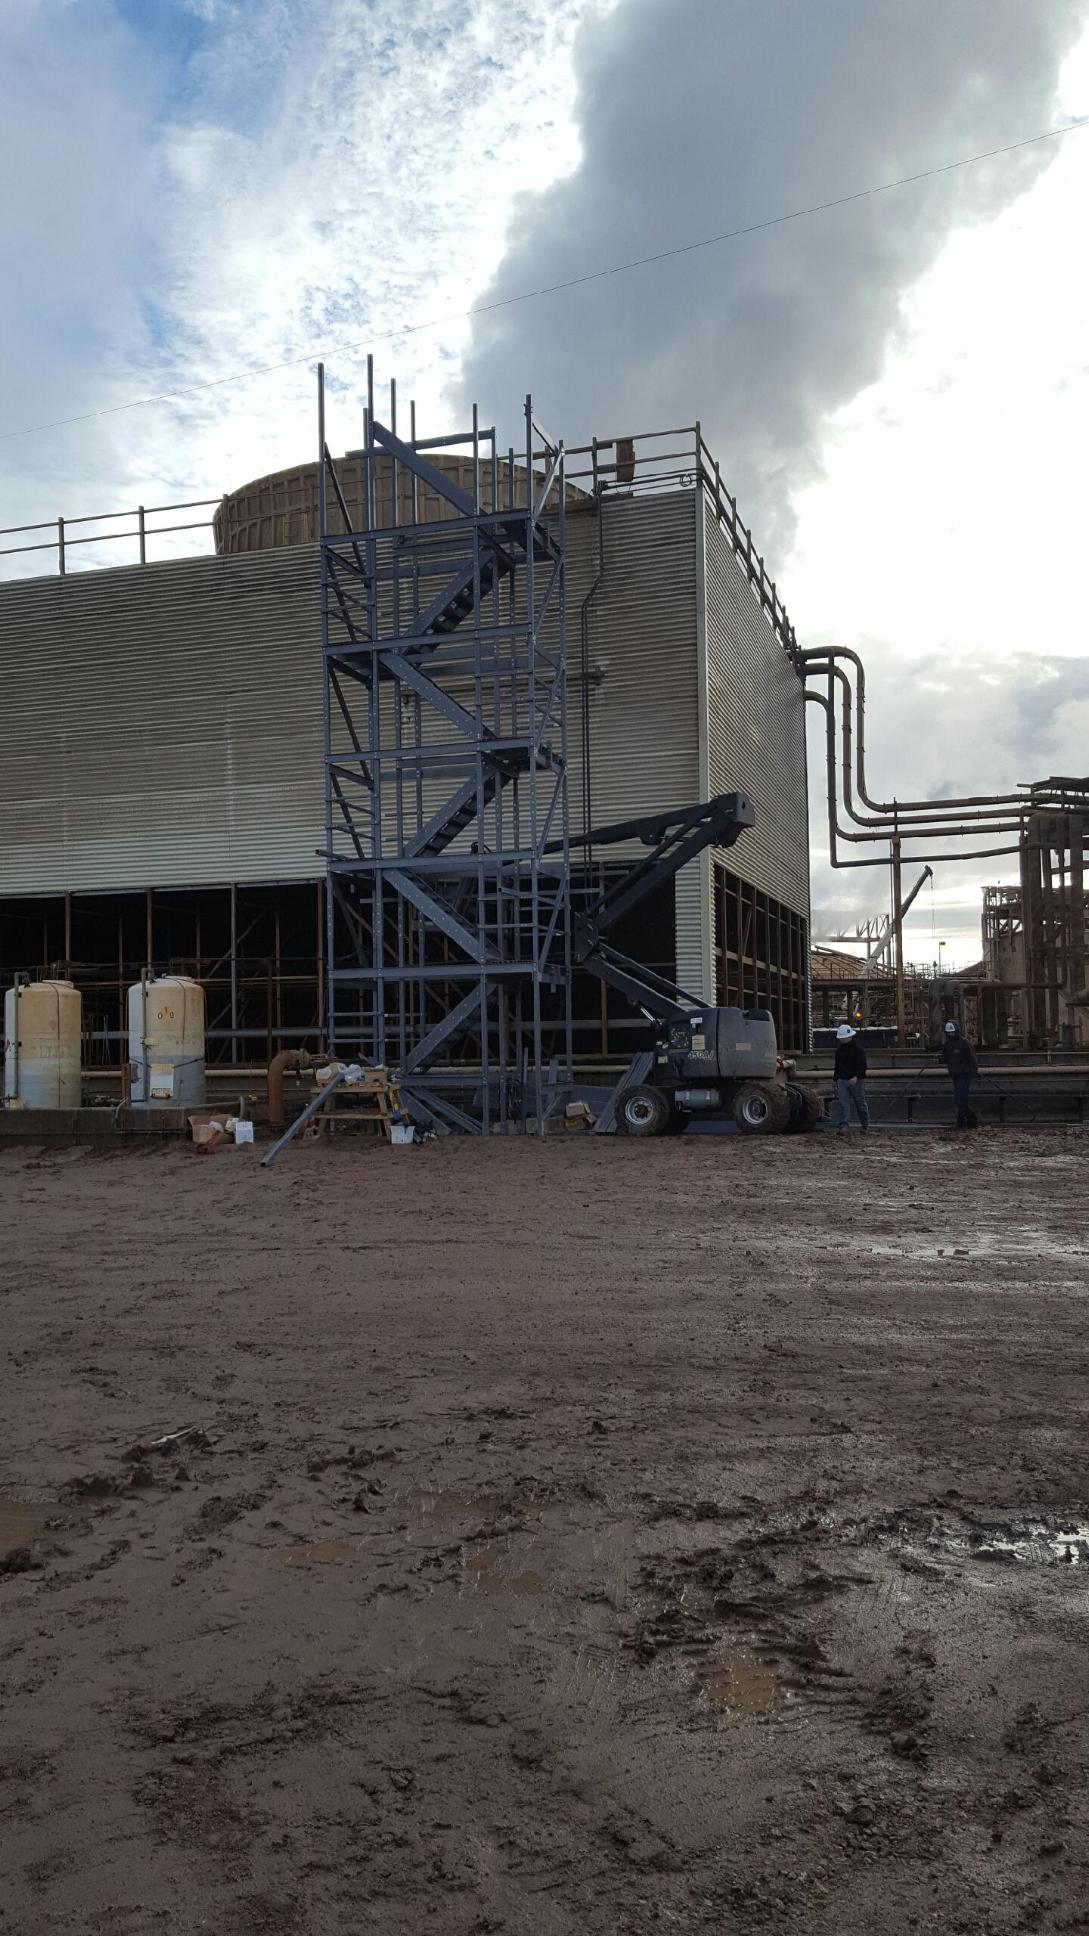 New stairway at power plant for cooling tower